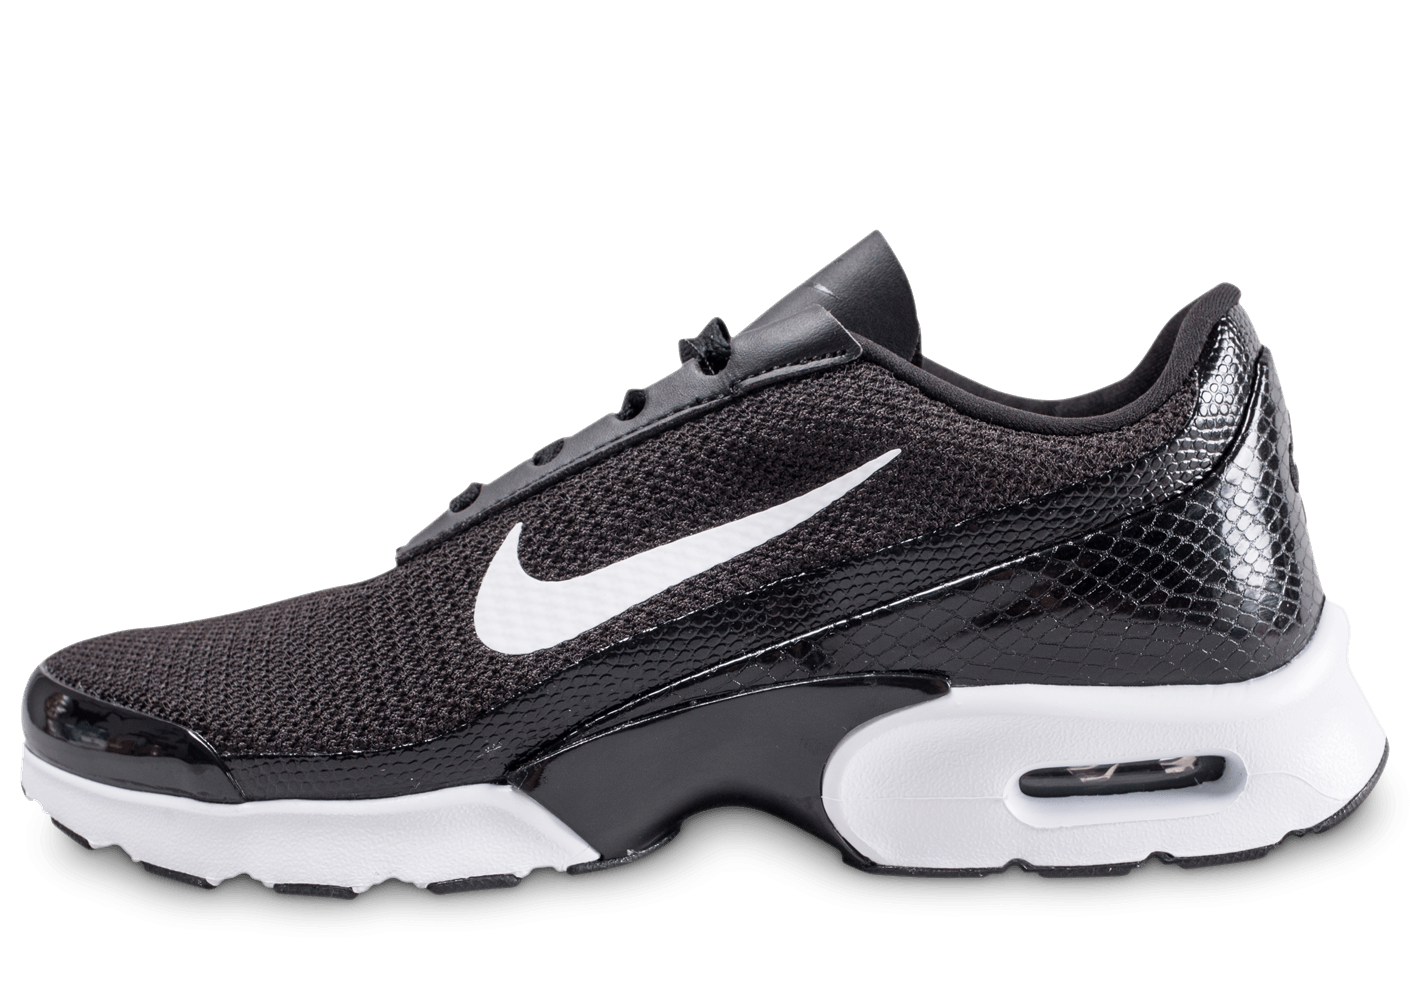 Nike Air Max Jewell noire et blanche